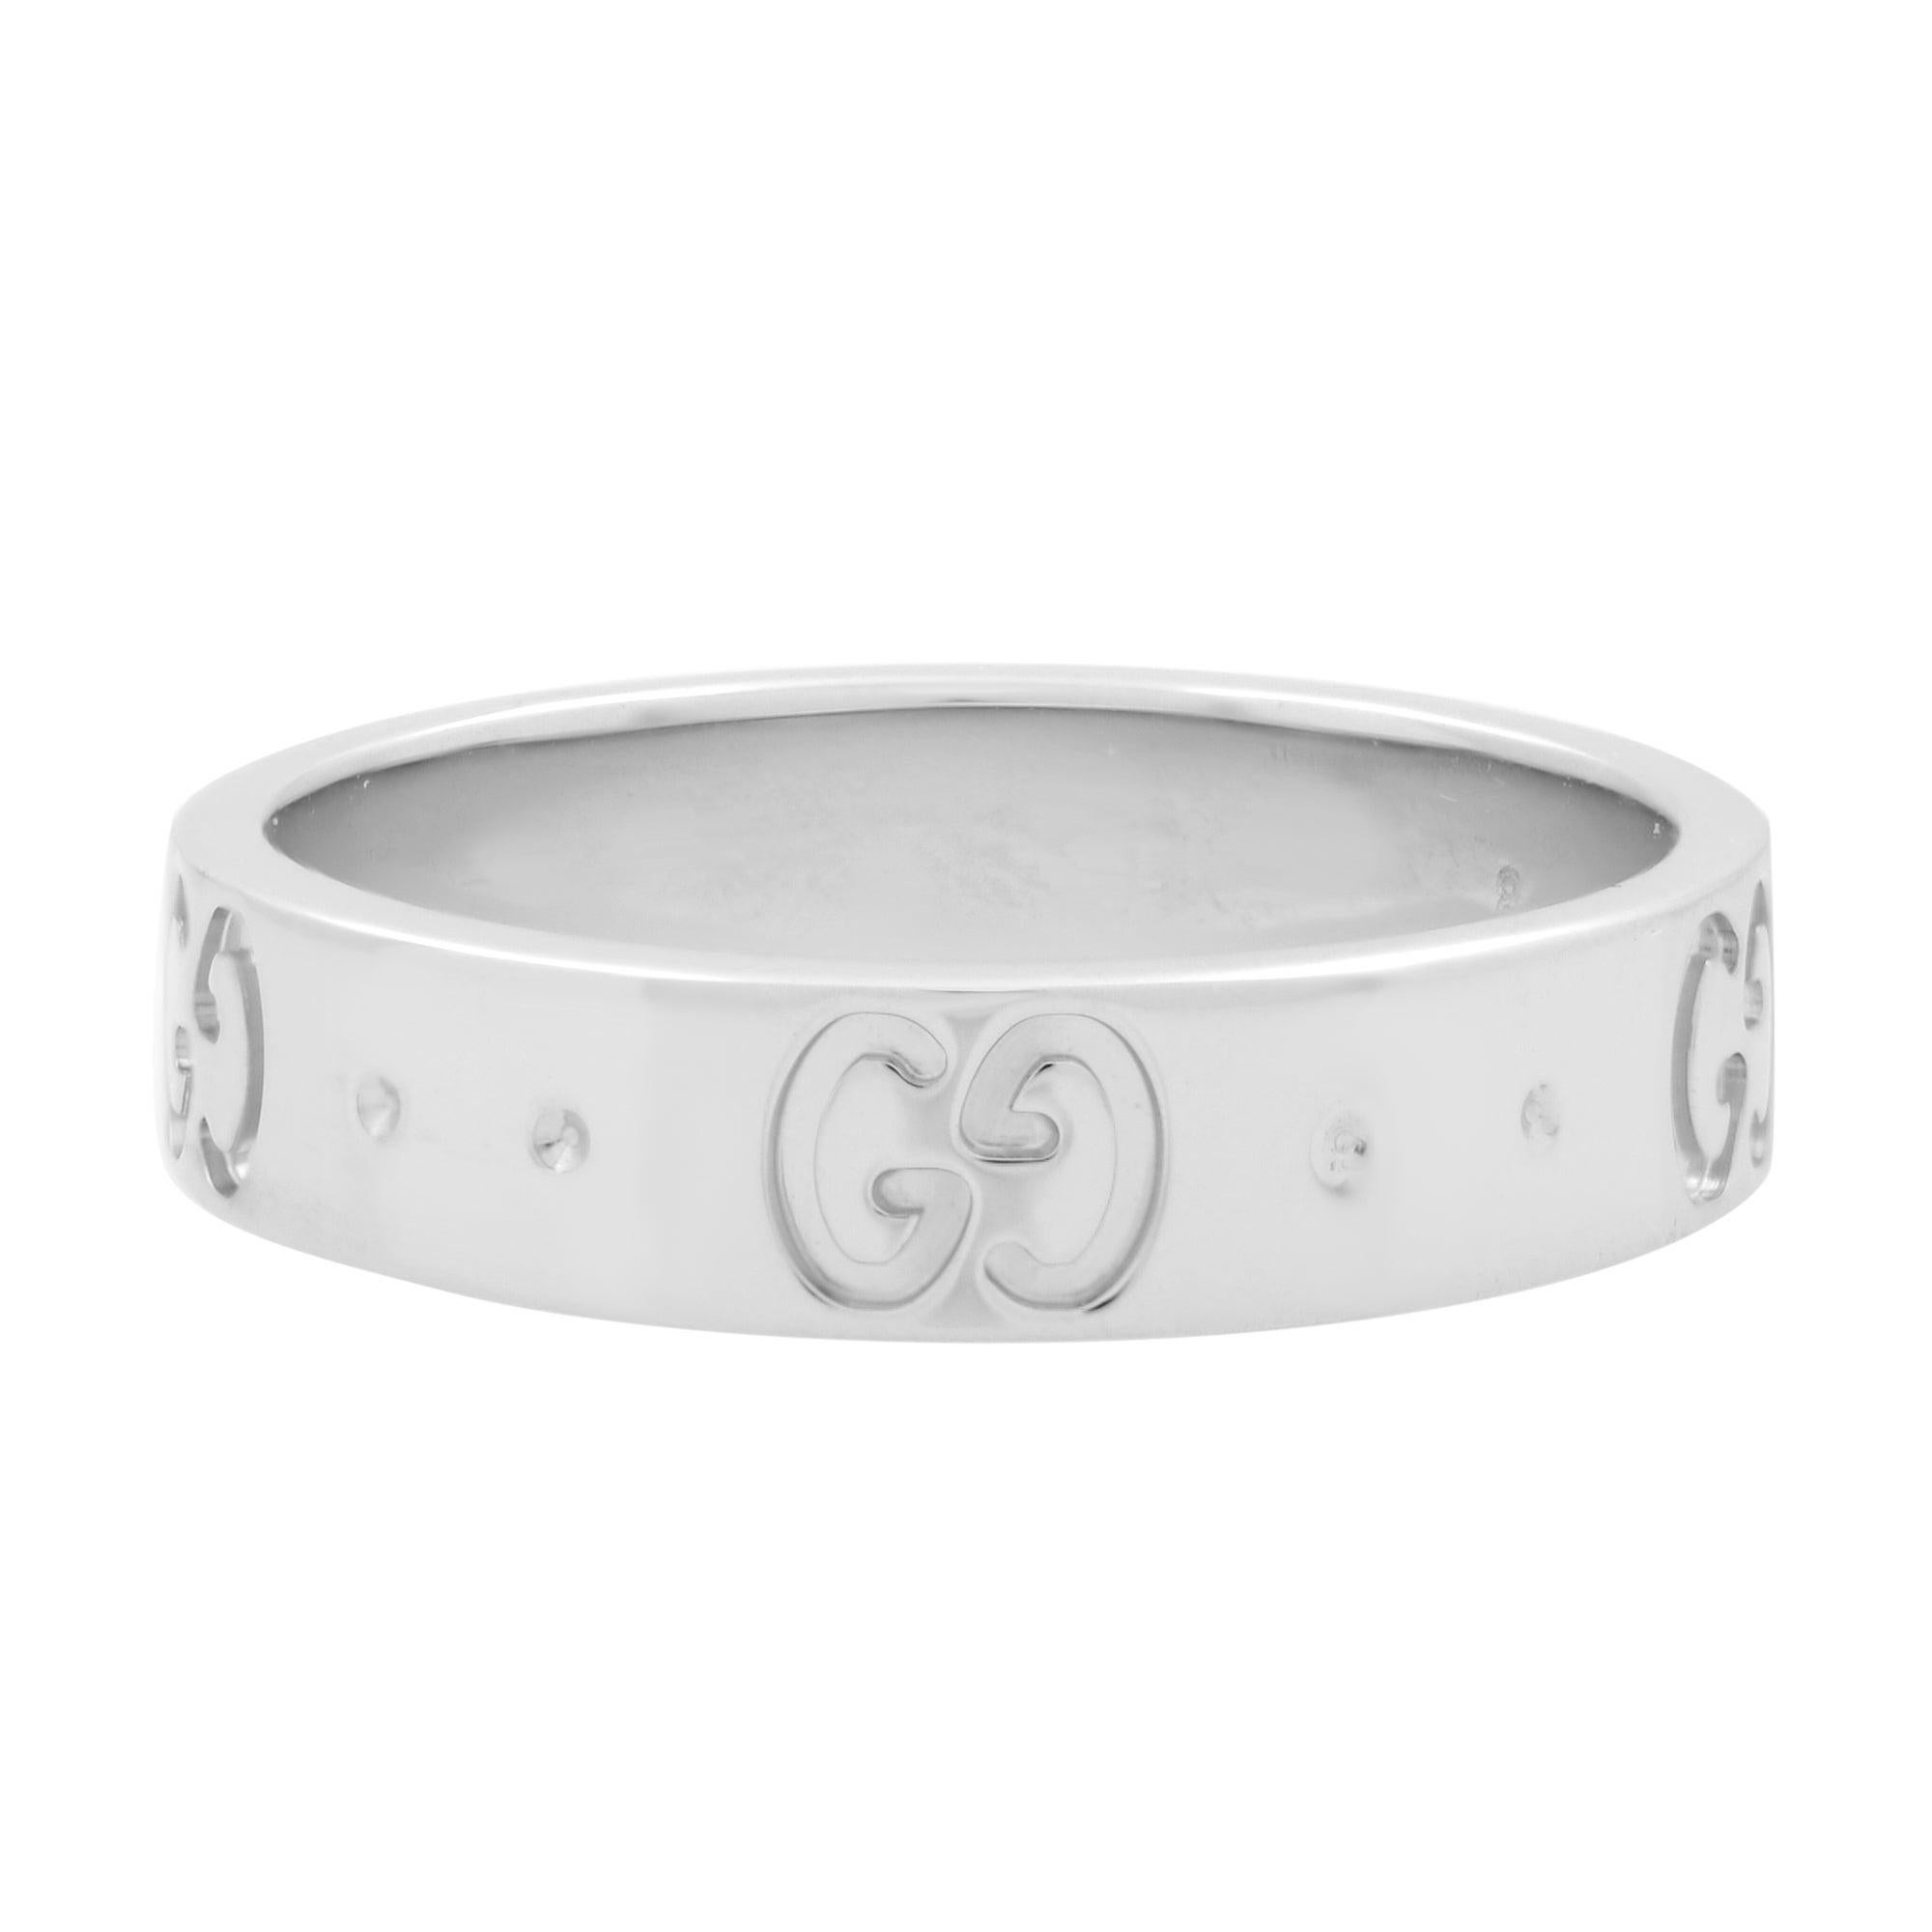 Gucci 18K White Gold Icon GG Thin Band Ring